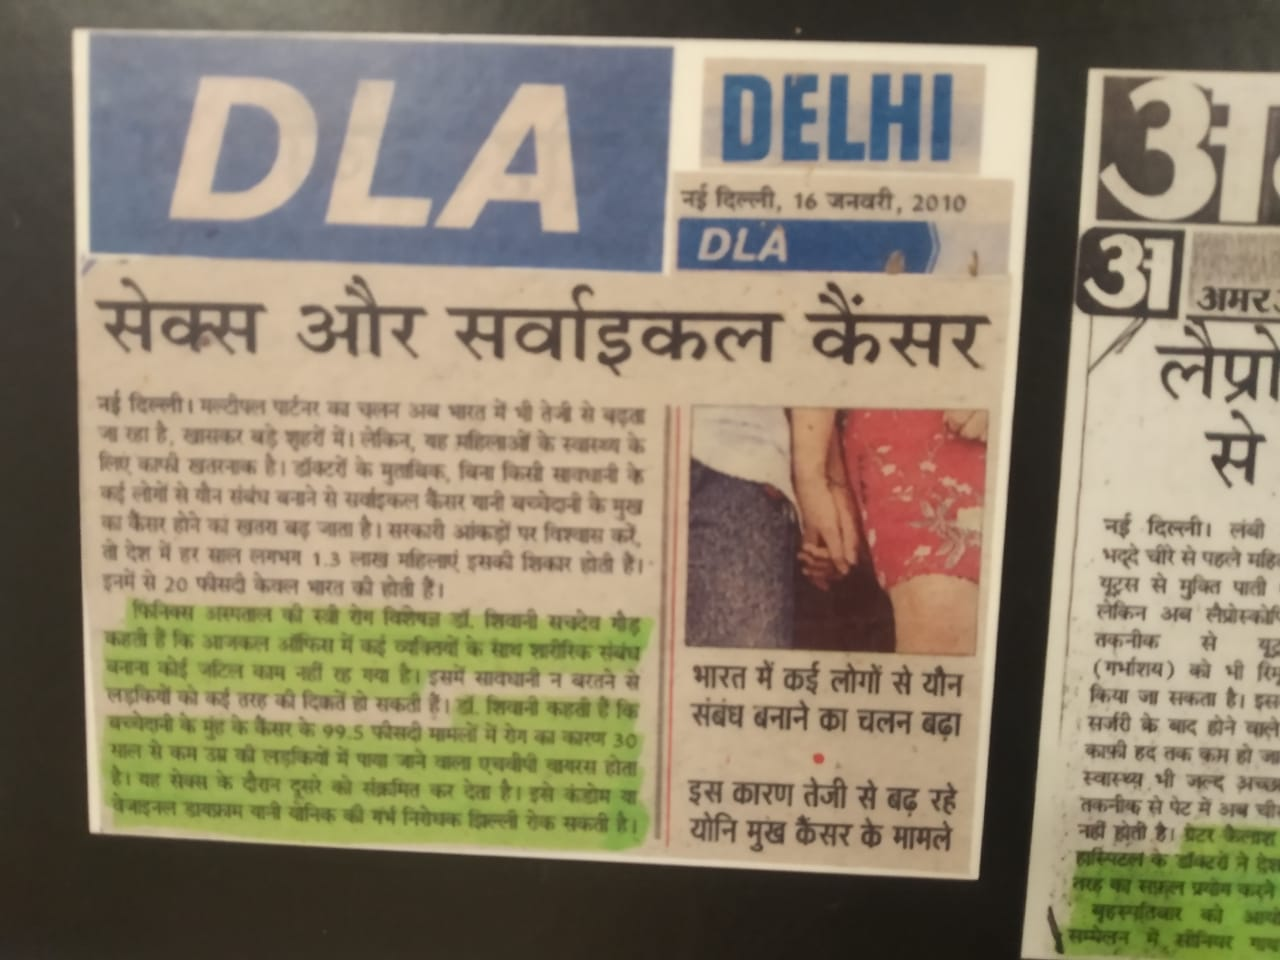 Sex and Cervical Cancer News in DLA Delhi